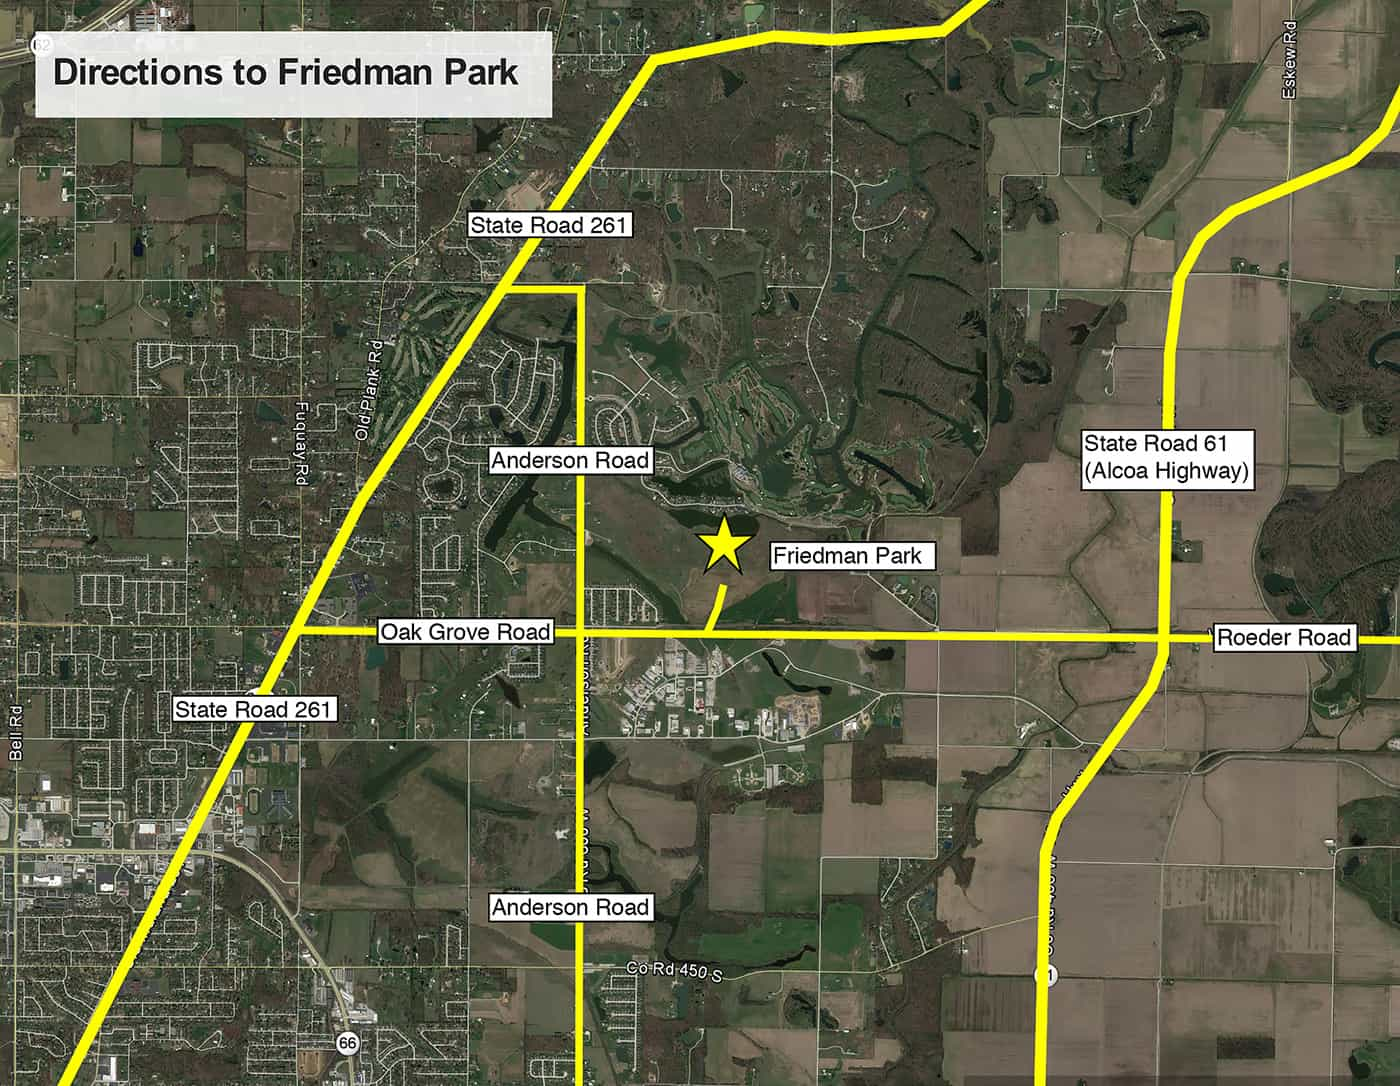 Friedman Park Map & Directions